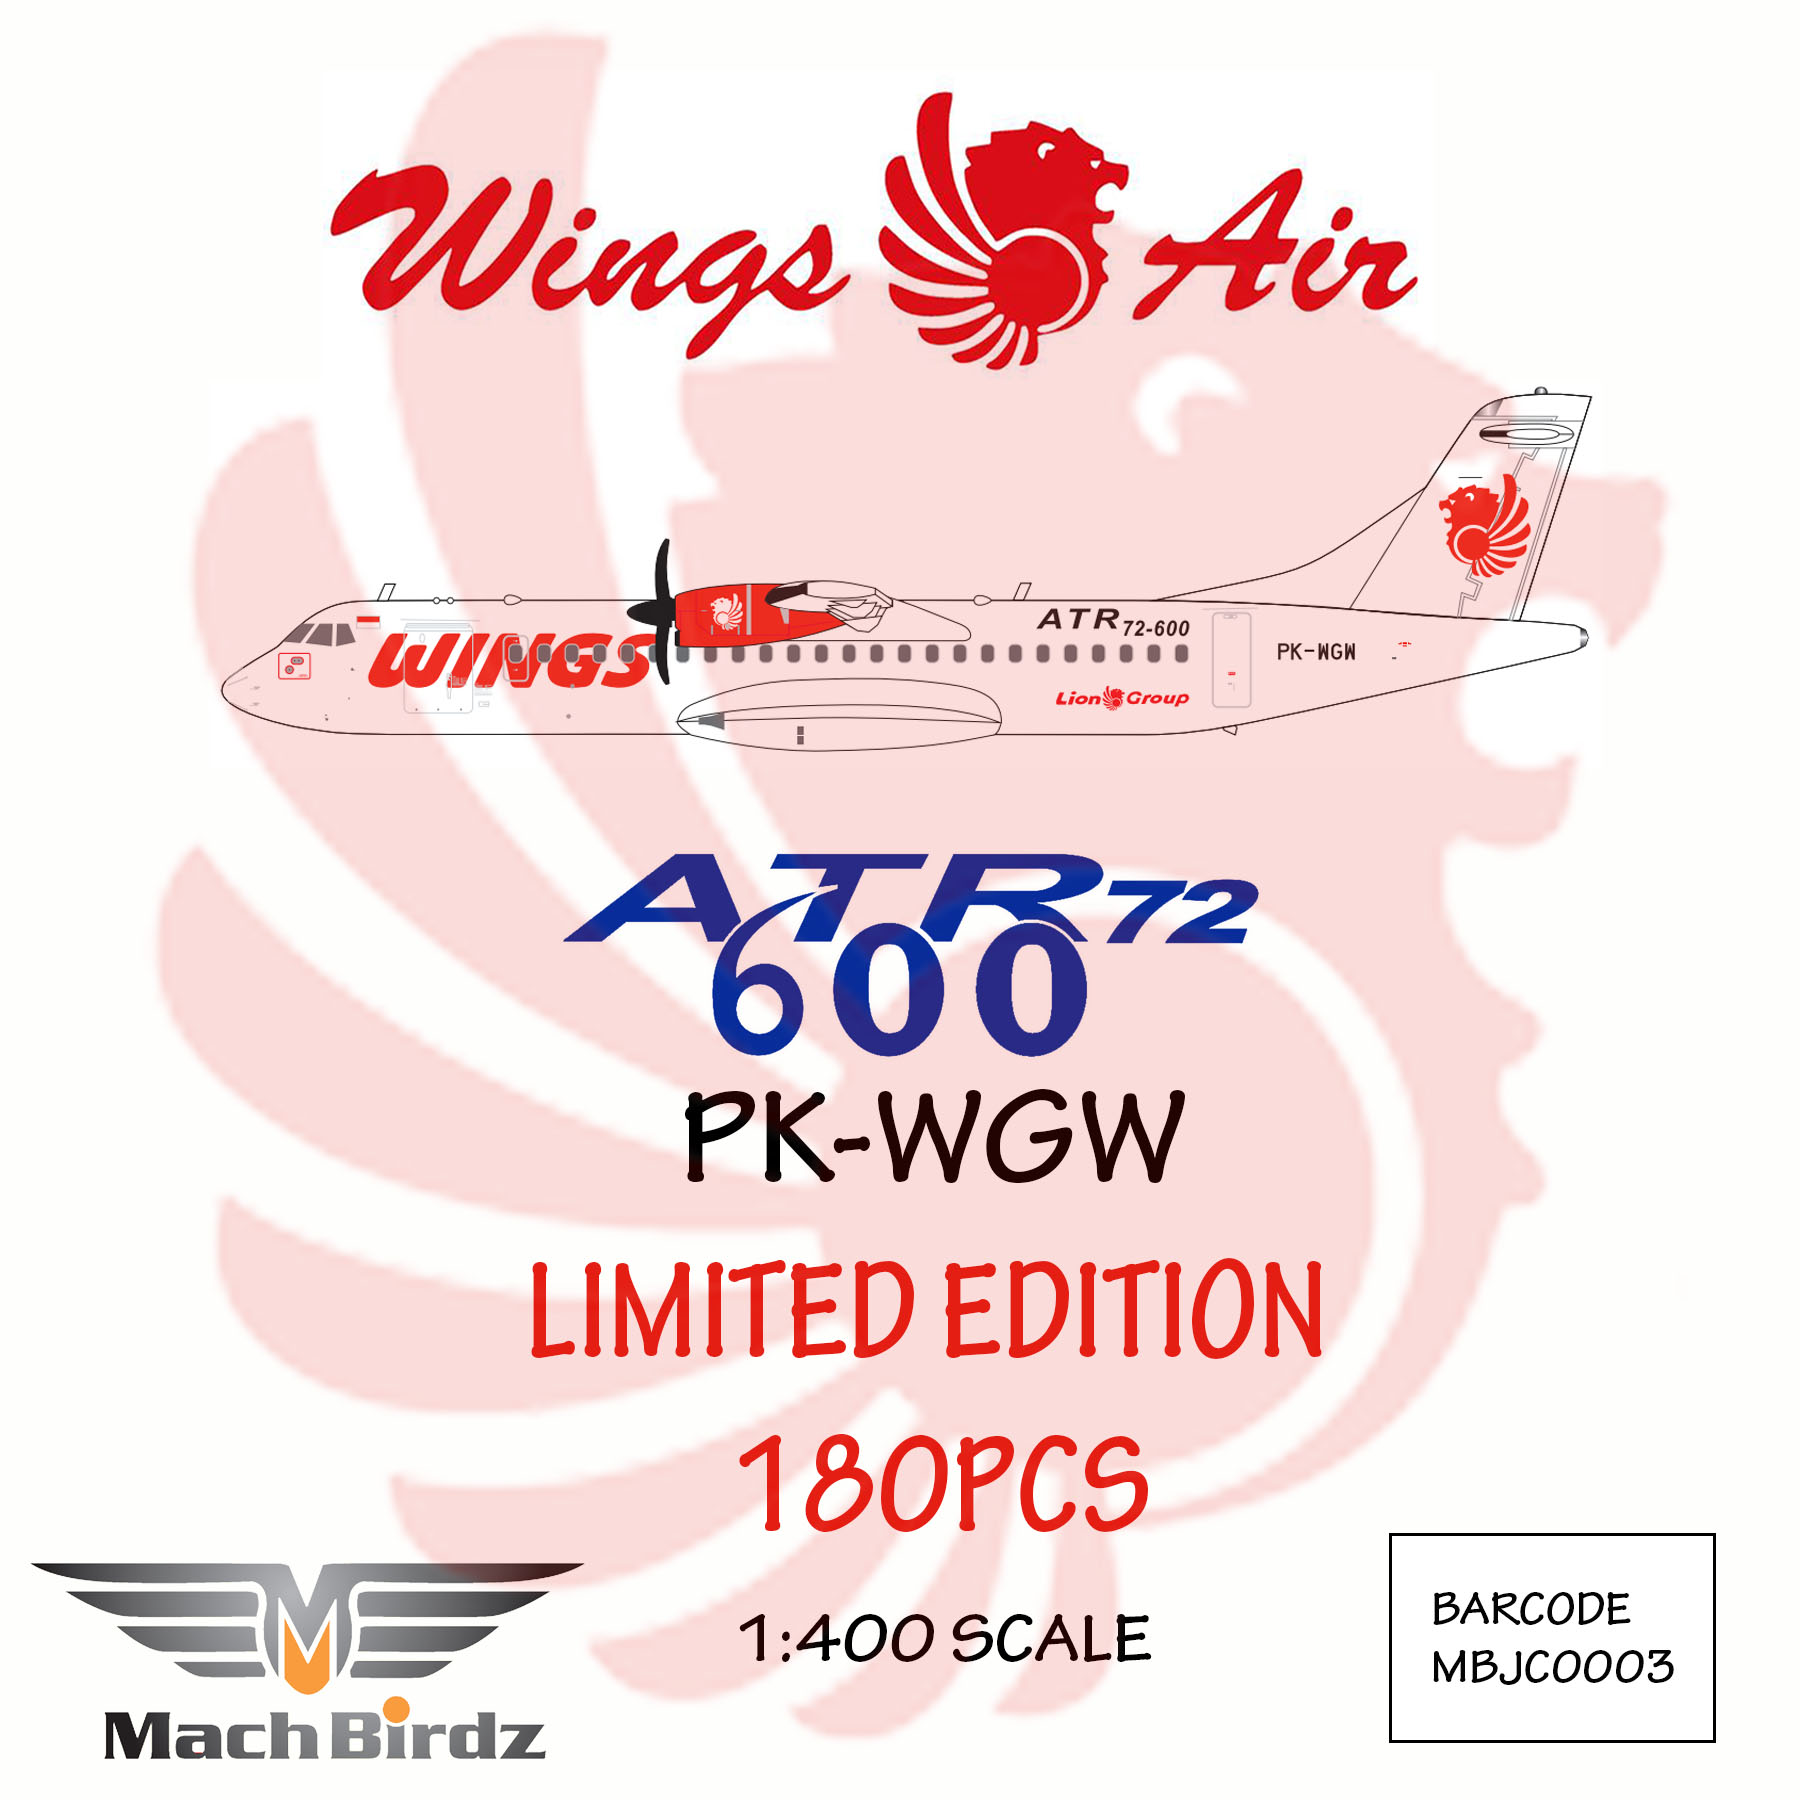 Wings Air ATR-72-600 PK-WGW